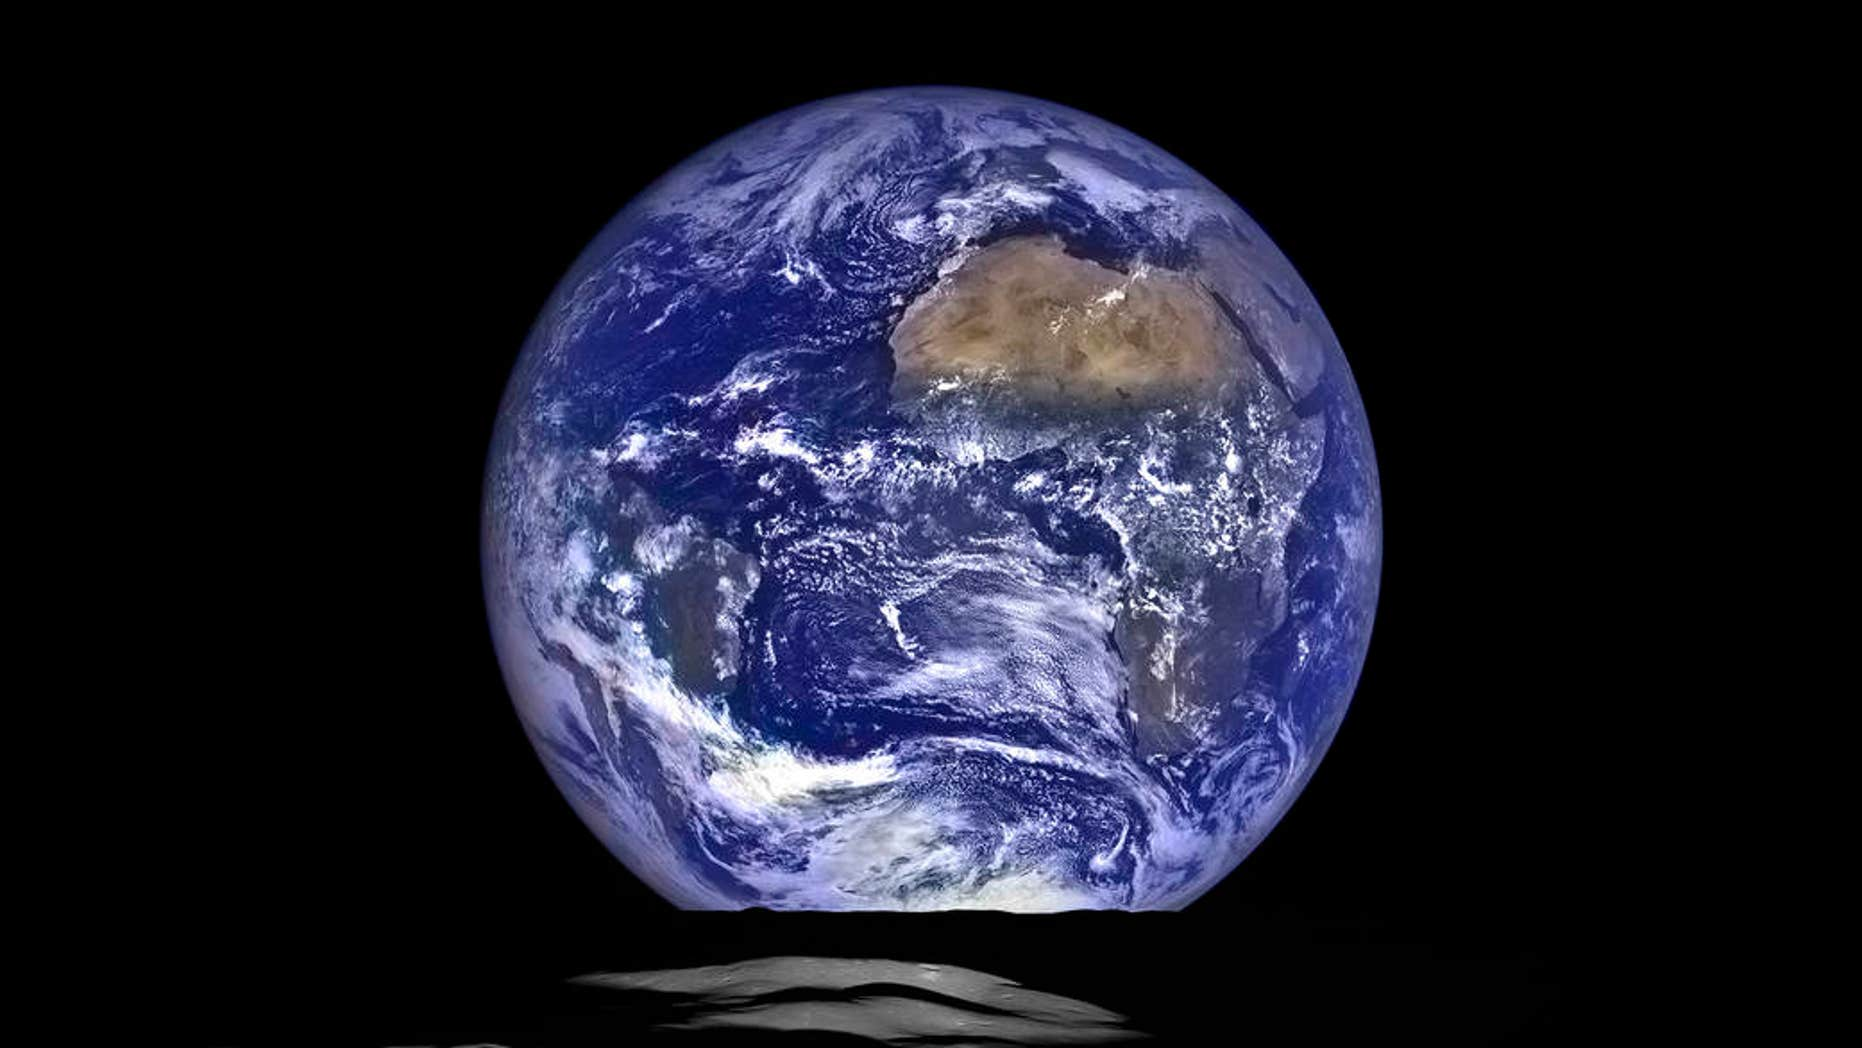 This gorgeous photo of Earth with the moon in the foreground was captured on Oct. 12, 2015, by NASA's Lunar Reconnaissance Orbiter spacecraft.